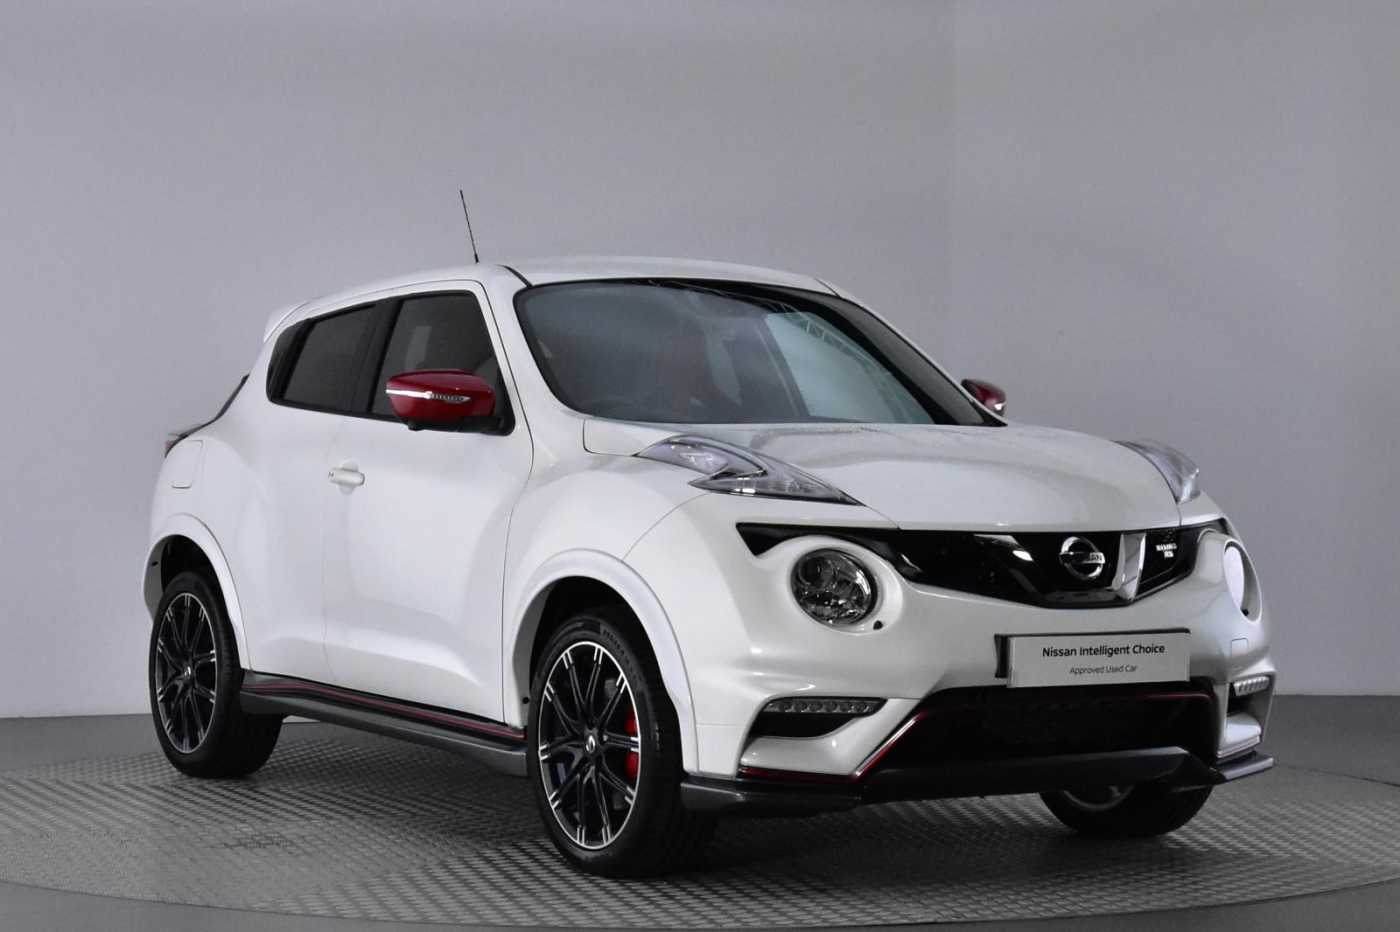 Nissan Juke White For Sale In Dundee Nissan Used Cars Uk Mdx Qxbs3wa